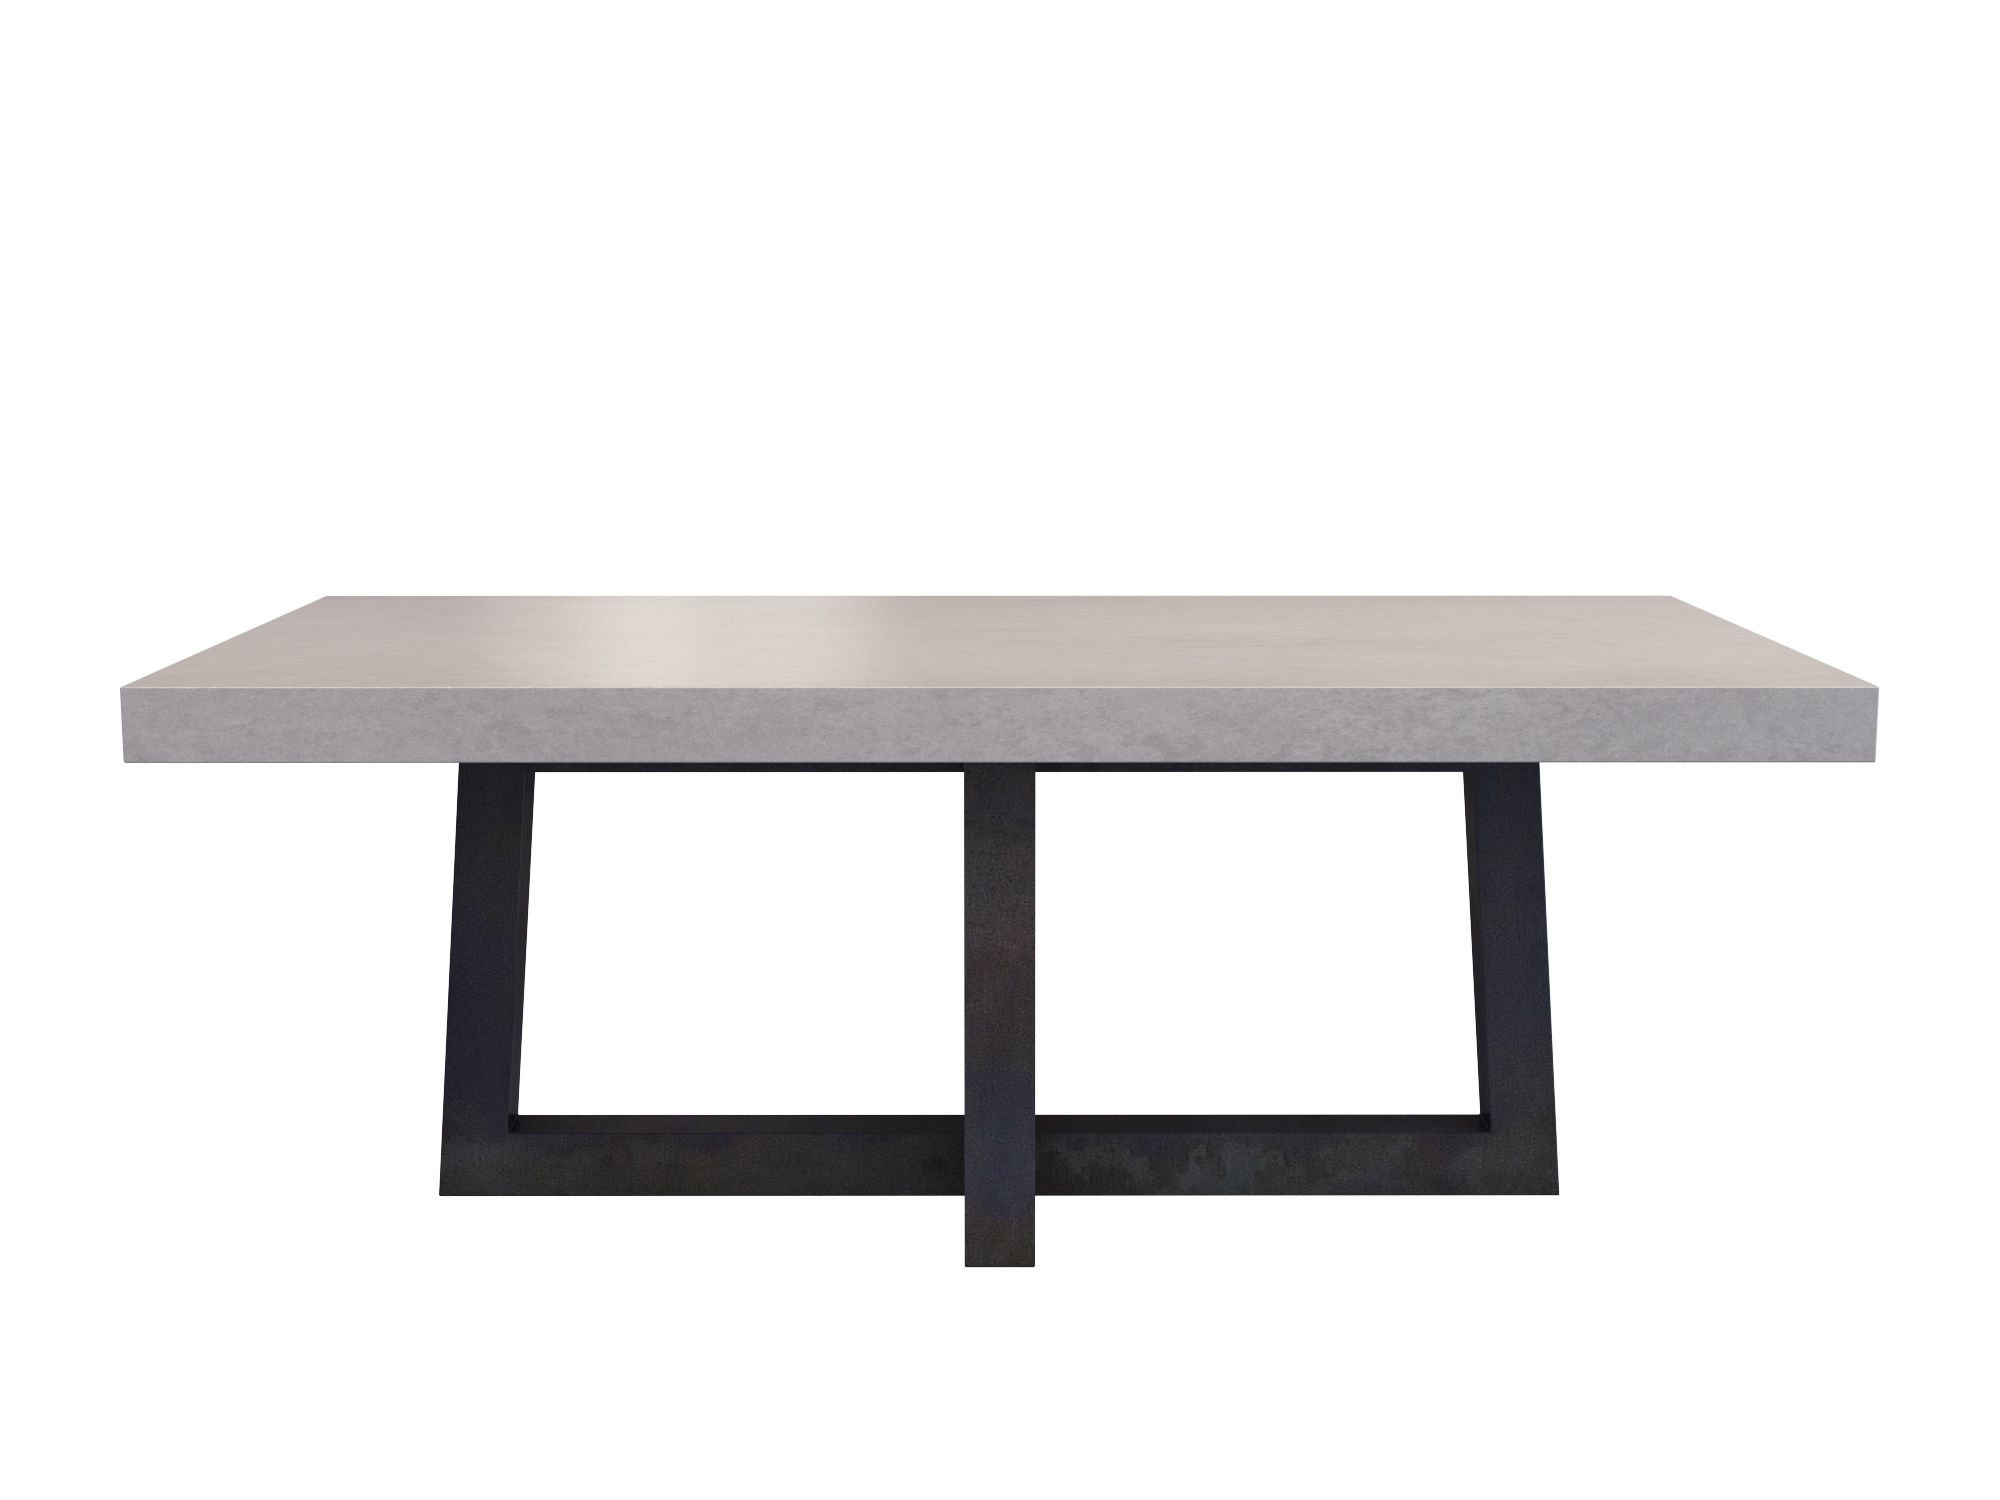 custom concrete kitchen dining tables trueform con concrete kitchen table Torre Rectangle Concrete Dining Table by Trueform Concrete TrueformConcrete OurTables